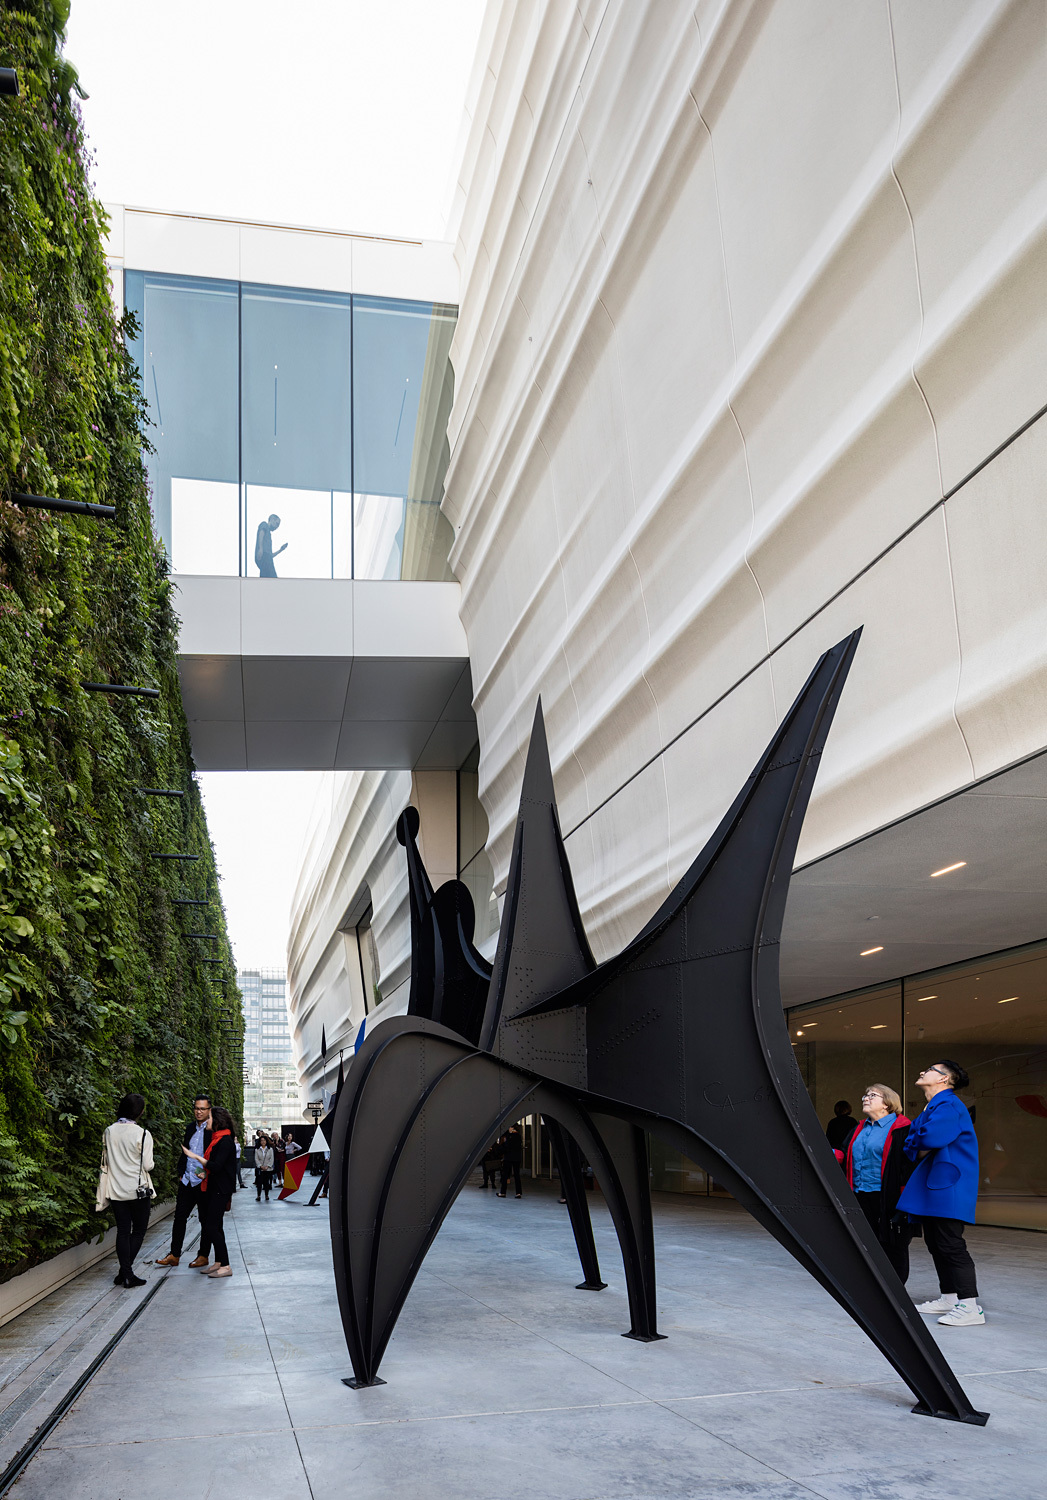 Pat and Bill Wilson Sculpture Terrace featuring Alexander Calder's sculpture Maquette for Trois Disques (Three Disks), formerly Man (1967) and the living wall, designed by Habitat Horticulture; photo: © Henrik Kam, courtesy SFMOMA.